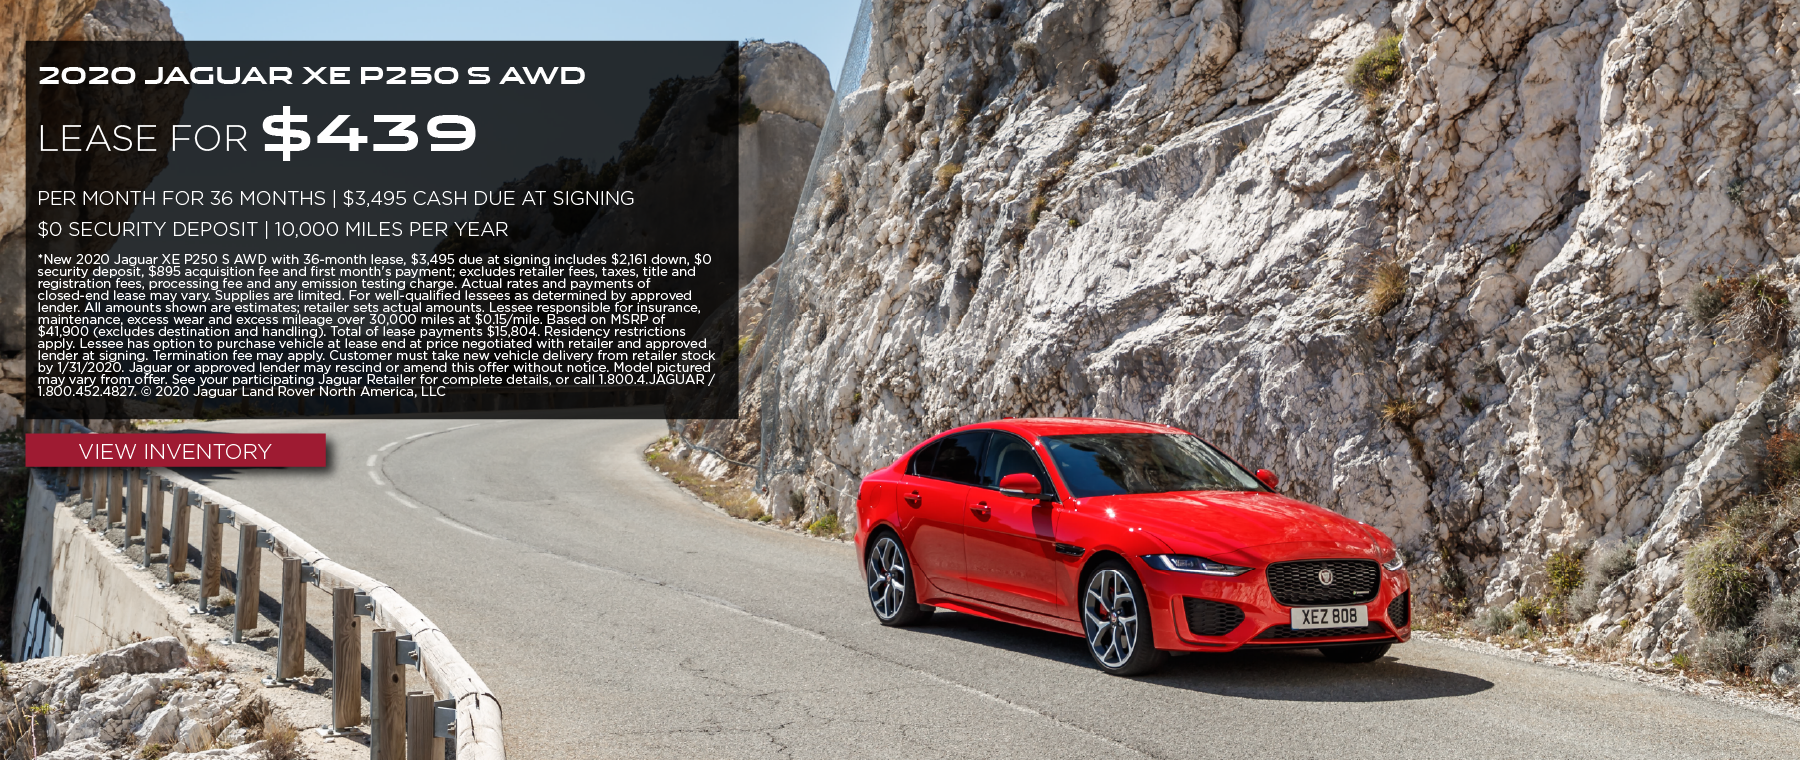 2020 JAGUAR XE P250 S AWD_$439 PER MONTH_36 MONTH LEASE TERM_$0 SECURITY DEPOSIT_$3,495 + TAX, LICENSE AND FEES DUE AT SIGNING_10,000 MILES PER YEAR_EXPIRES JANUARY 31, 2020_VIEW INVENTORY_RED JAGUAR XE DRIVING DOWN MOUNTAIN ROAD NEAR ROCK FORMATION